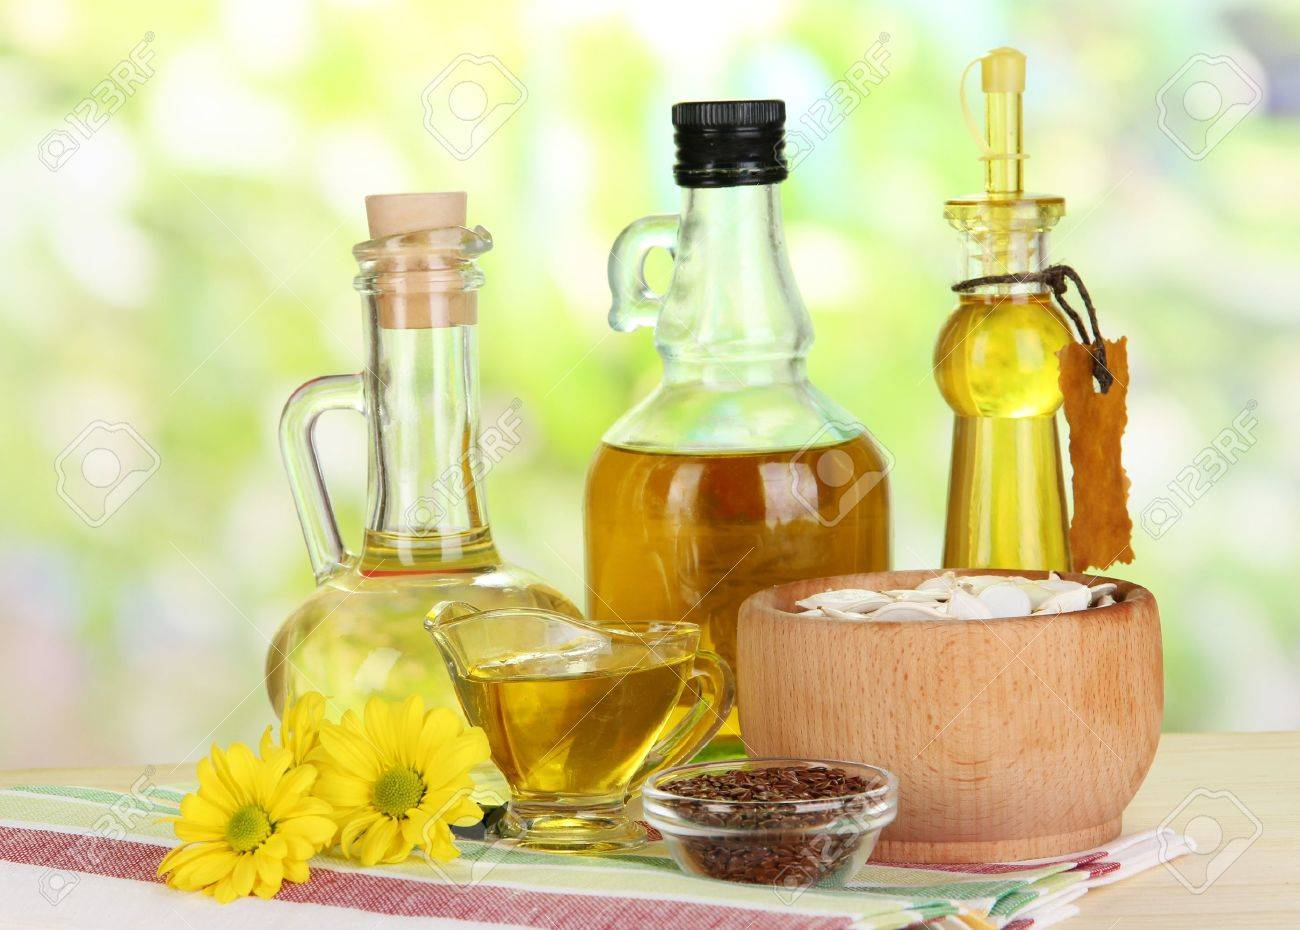 Useful linseed oil and pumpkin seed oil on wooden table on natural background Stock Photo - 19763858